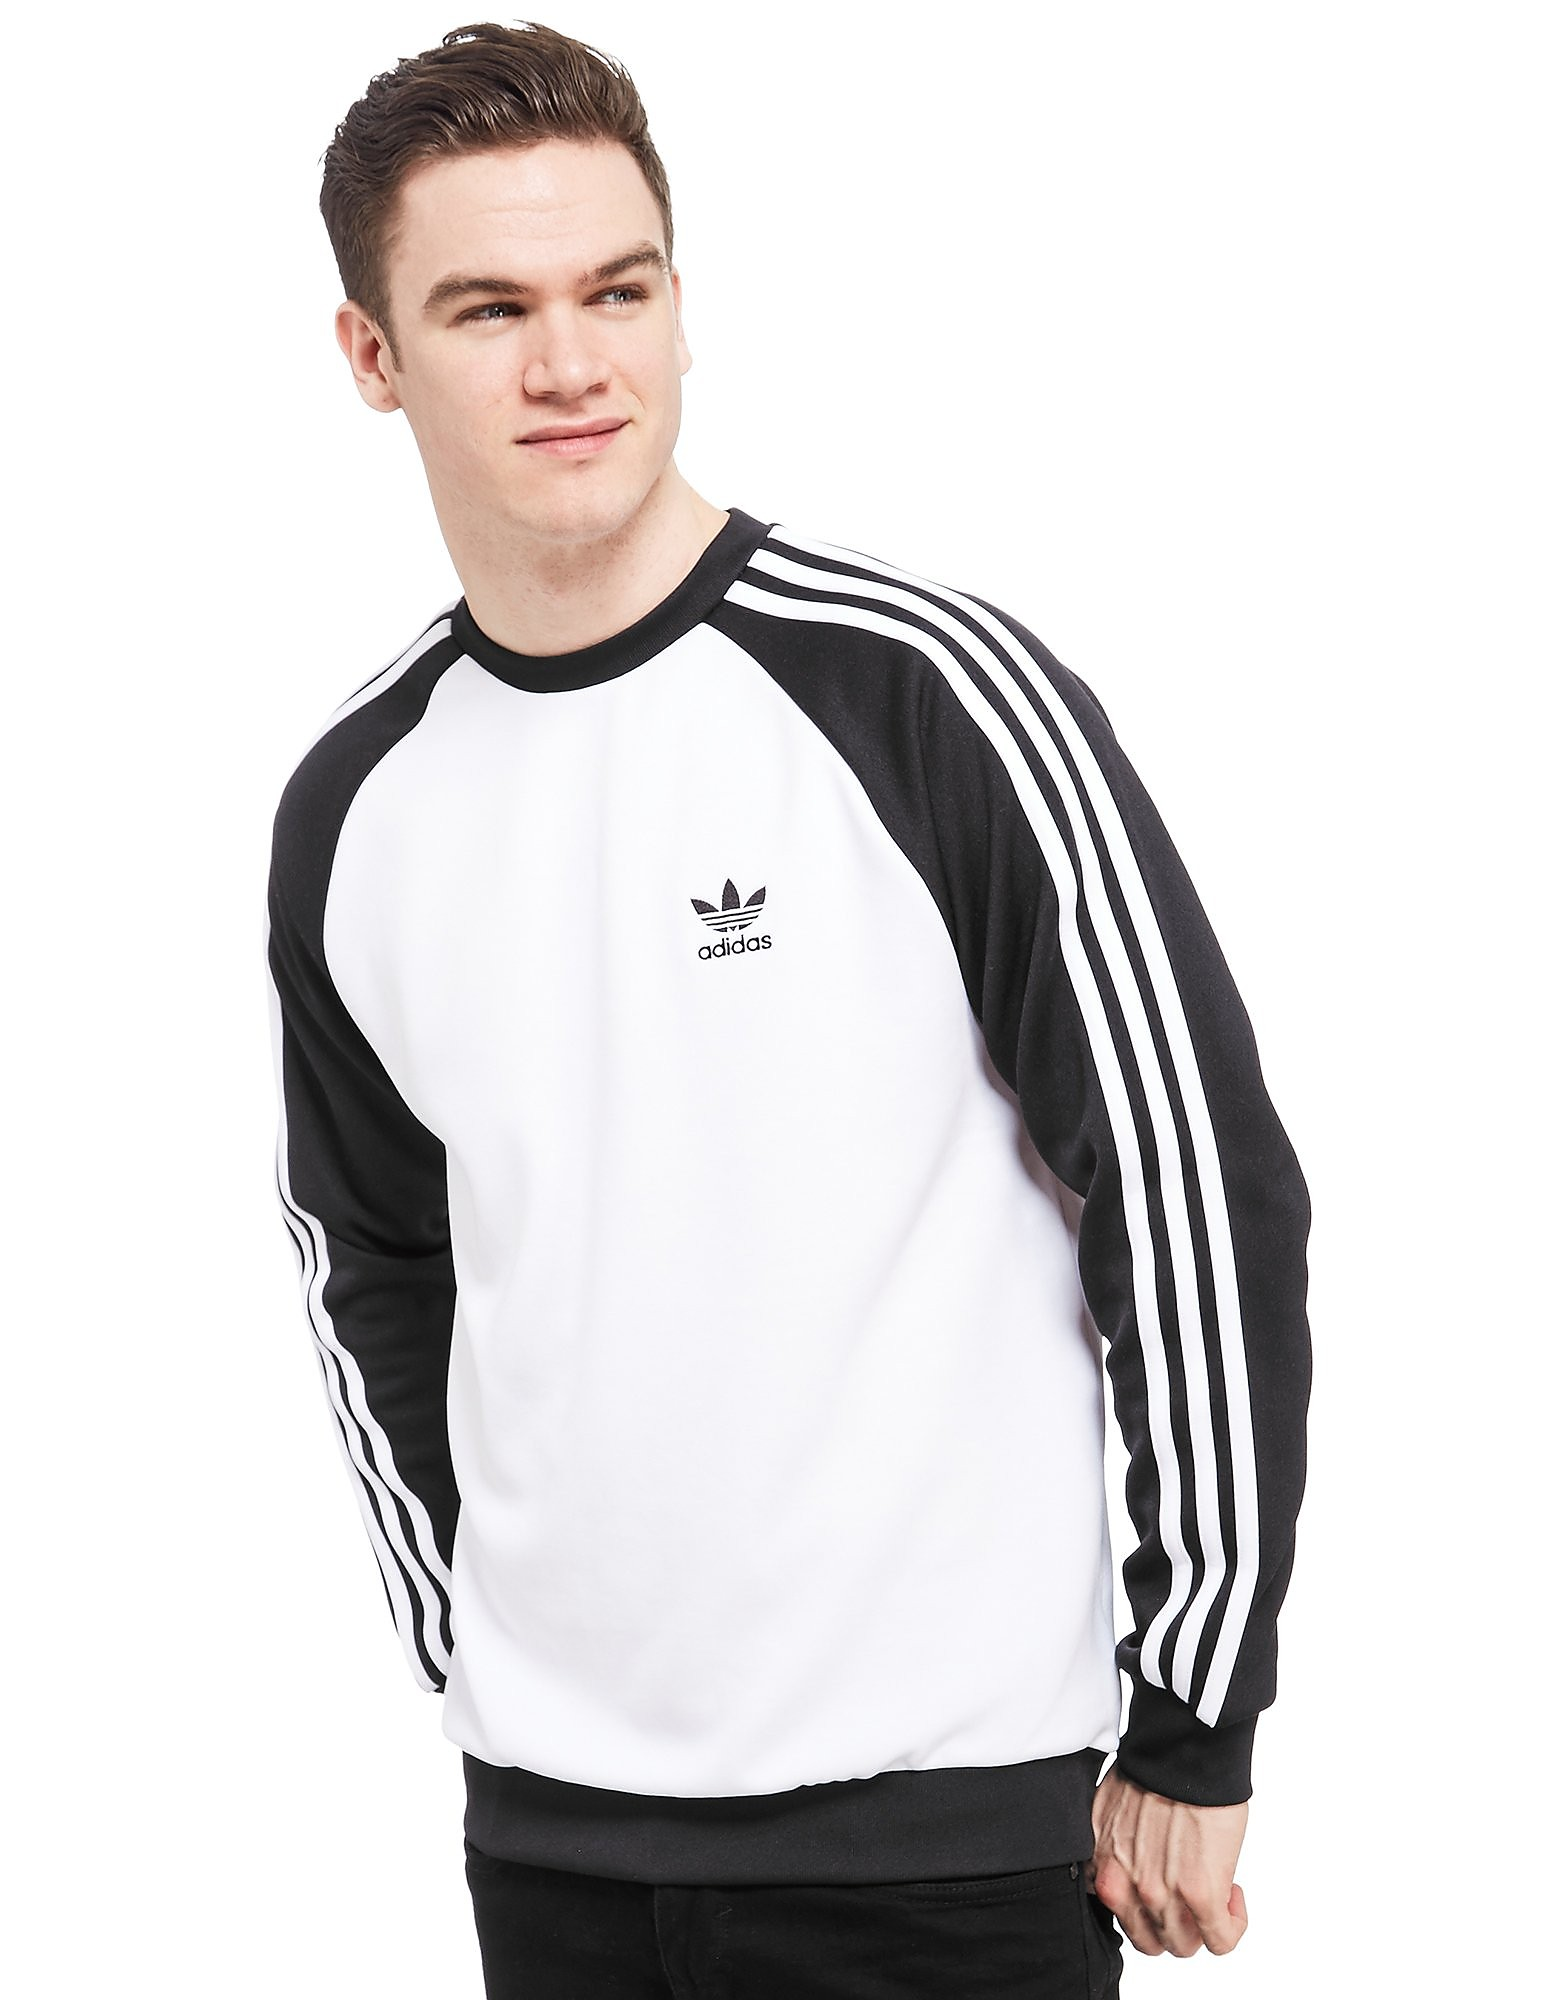 adidas Originals Superstar Sweatshirt